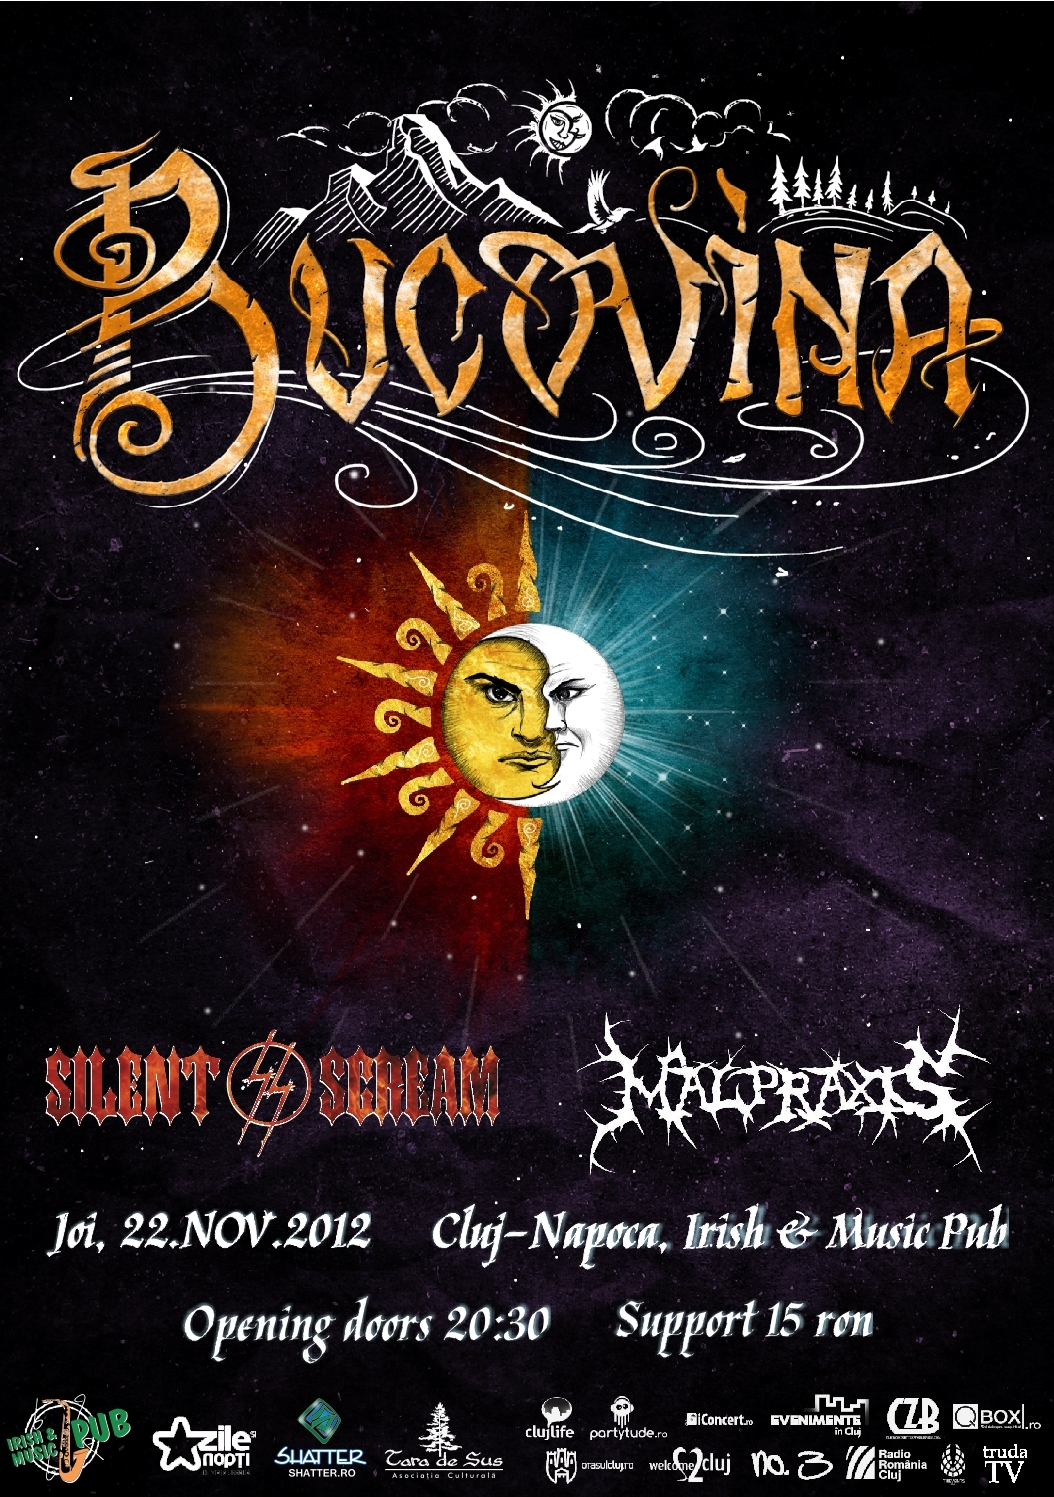 Bucovina @ Irish & Music Pub